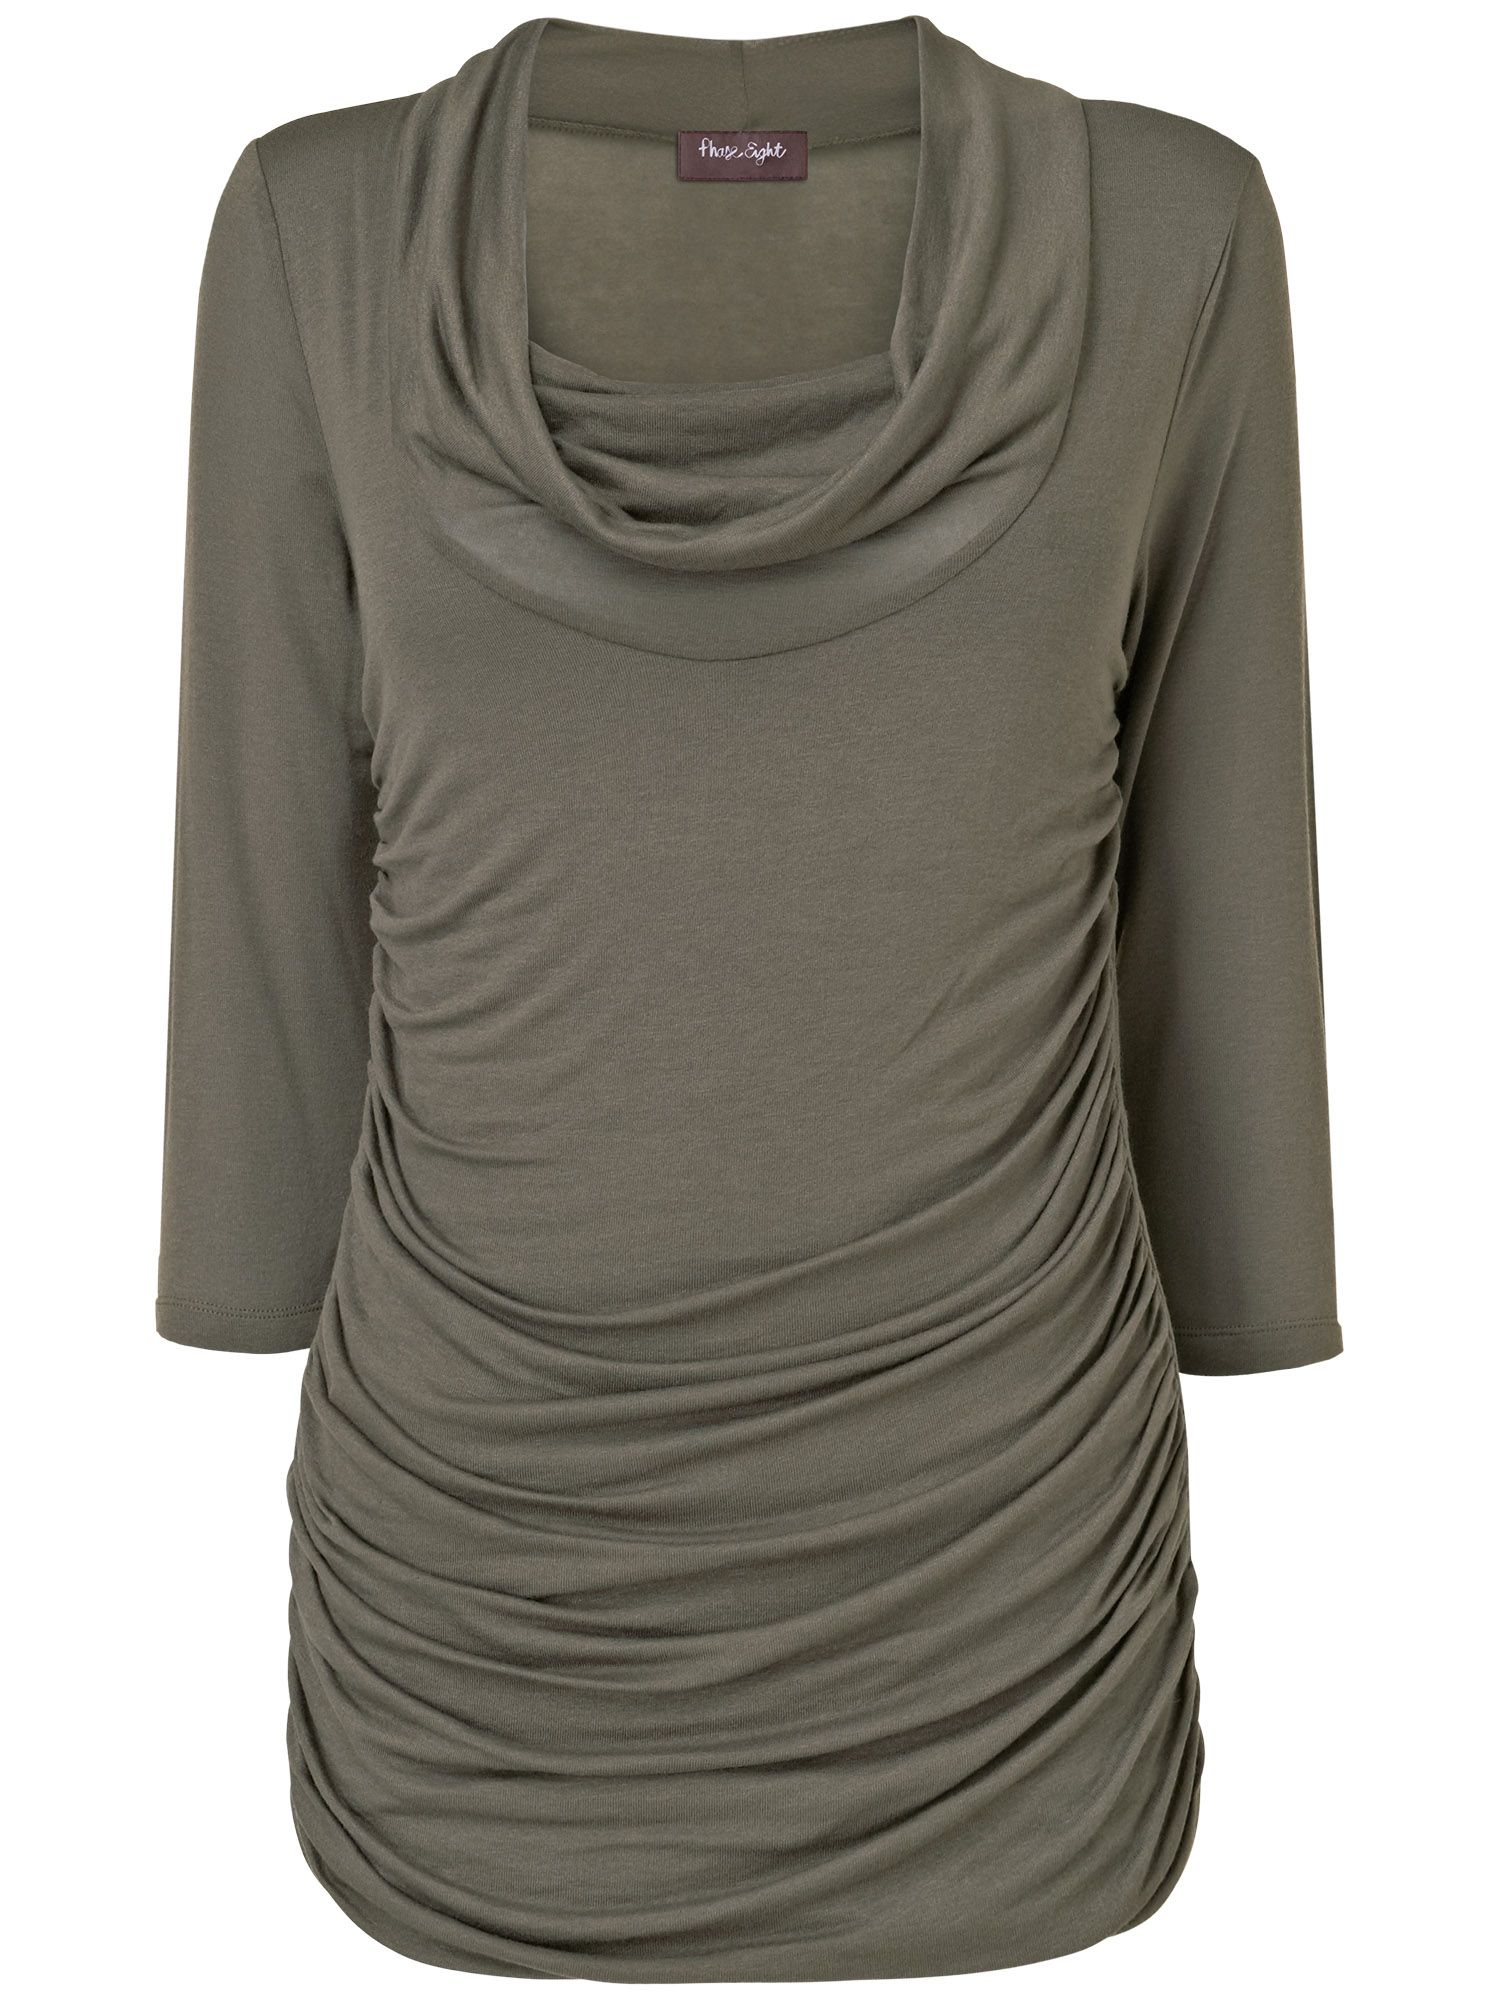 Caitlin cowl plain top